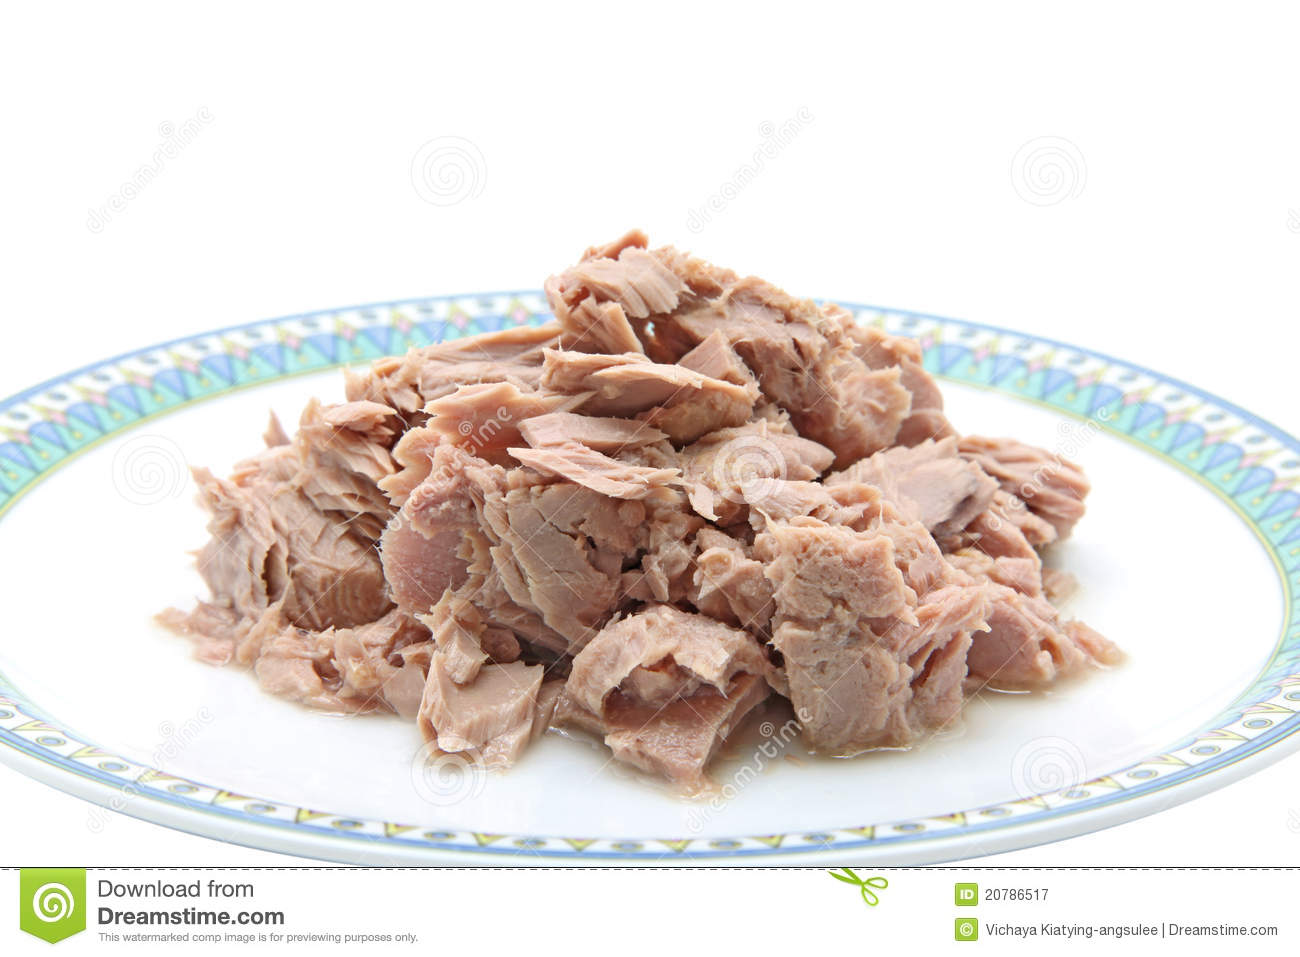 Tuna fish meat in dish for cooking isolated on white background.